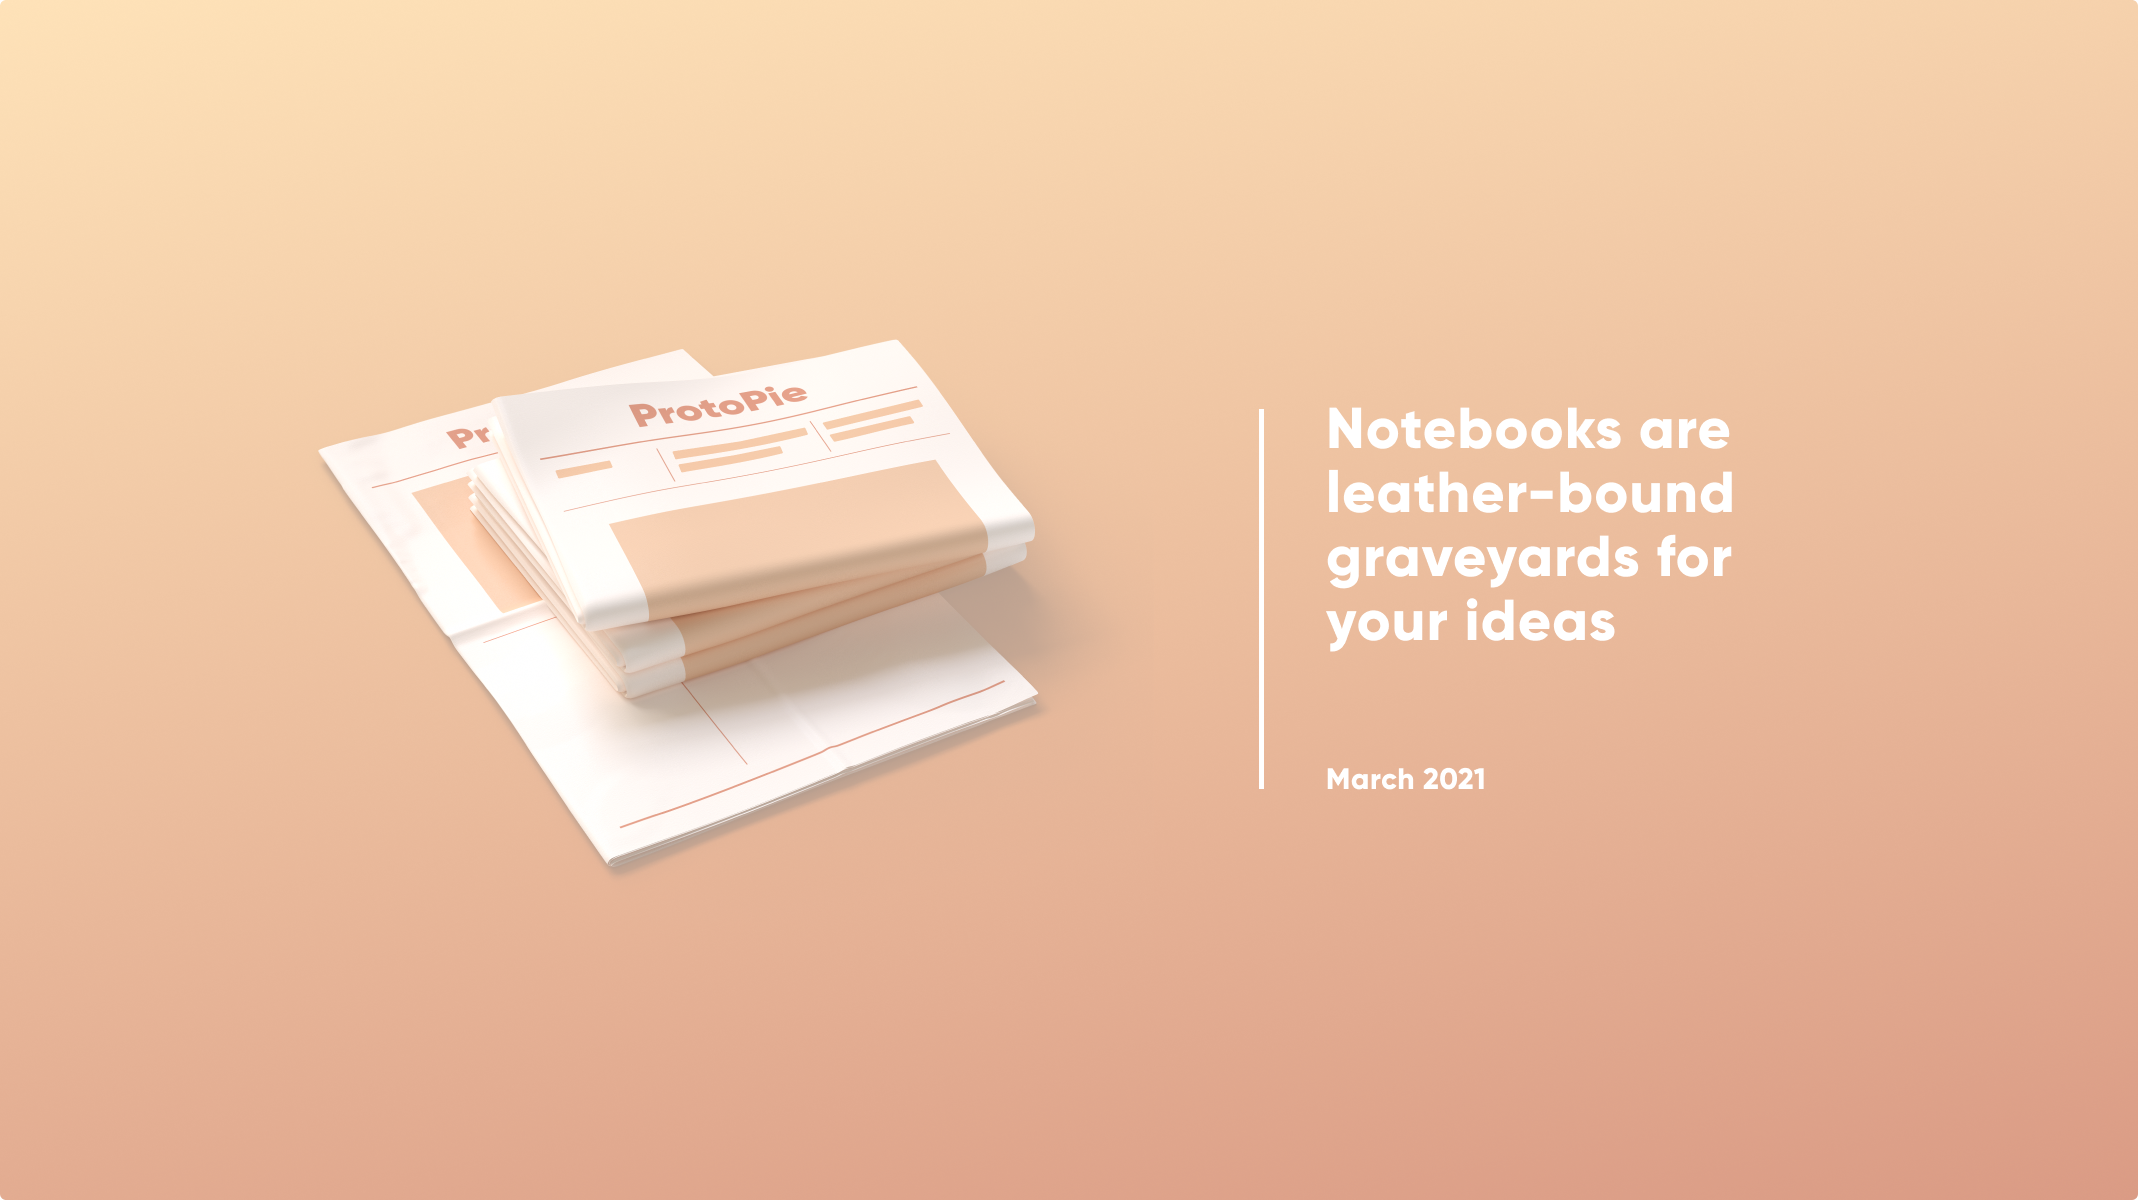 Notebooks are leather-bound graveyards for your ideas thumbnail